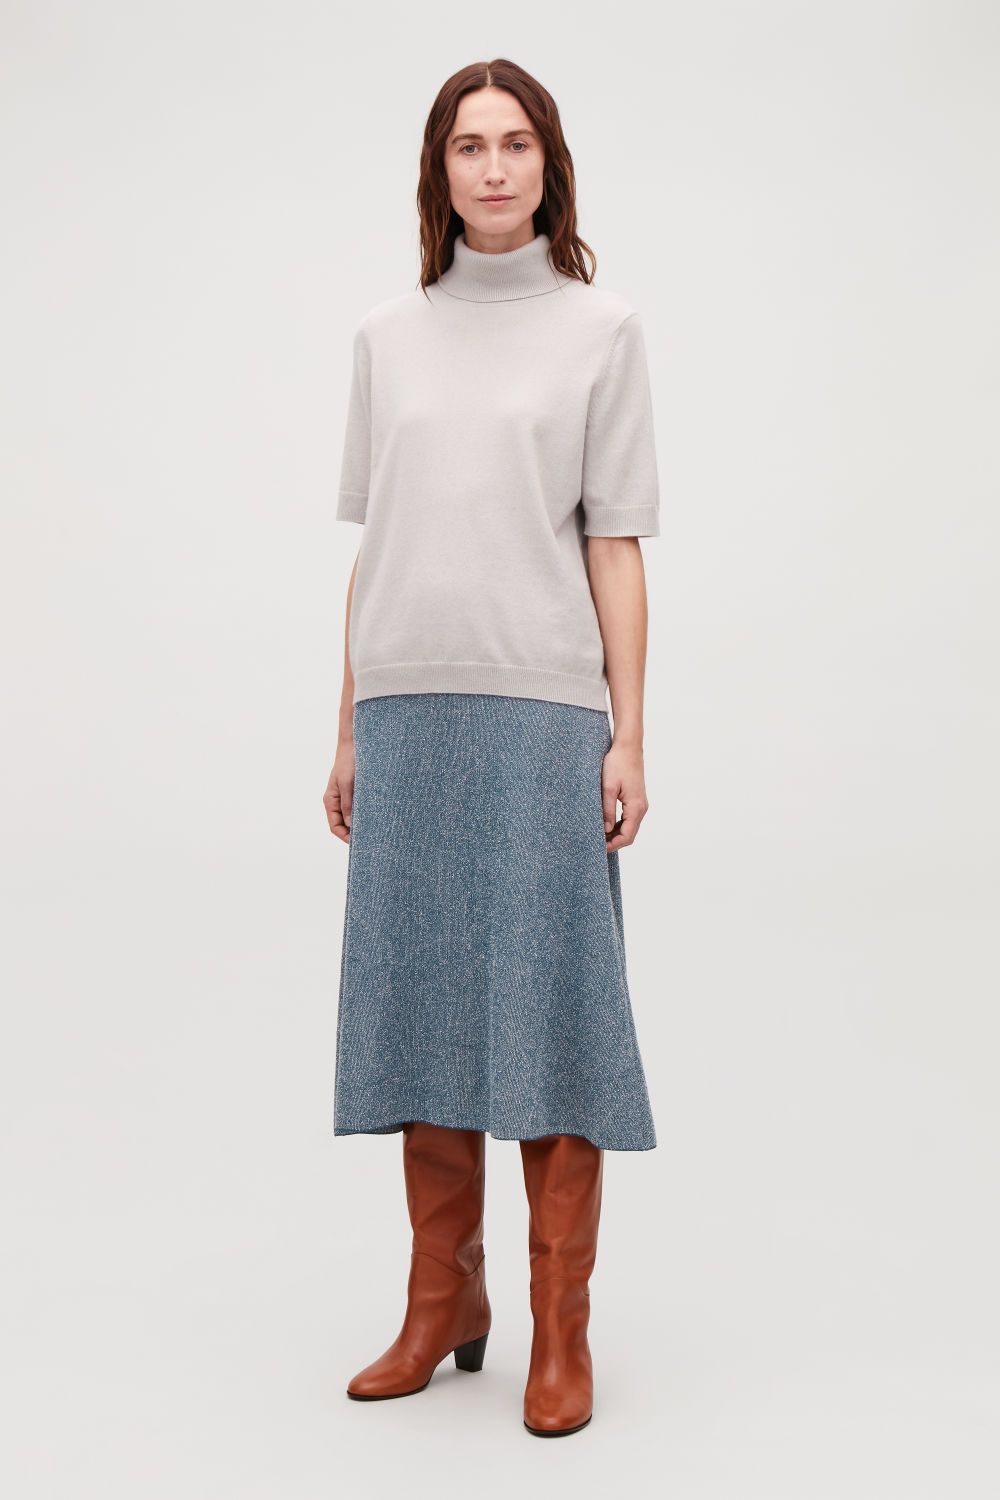 DROP-NEEDLE STITCH KNIT SKIRT